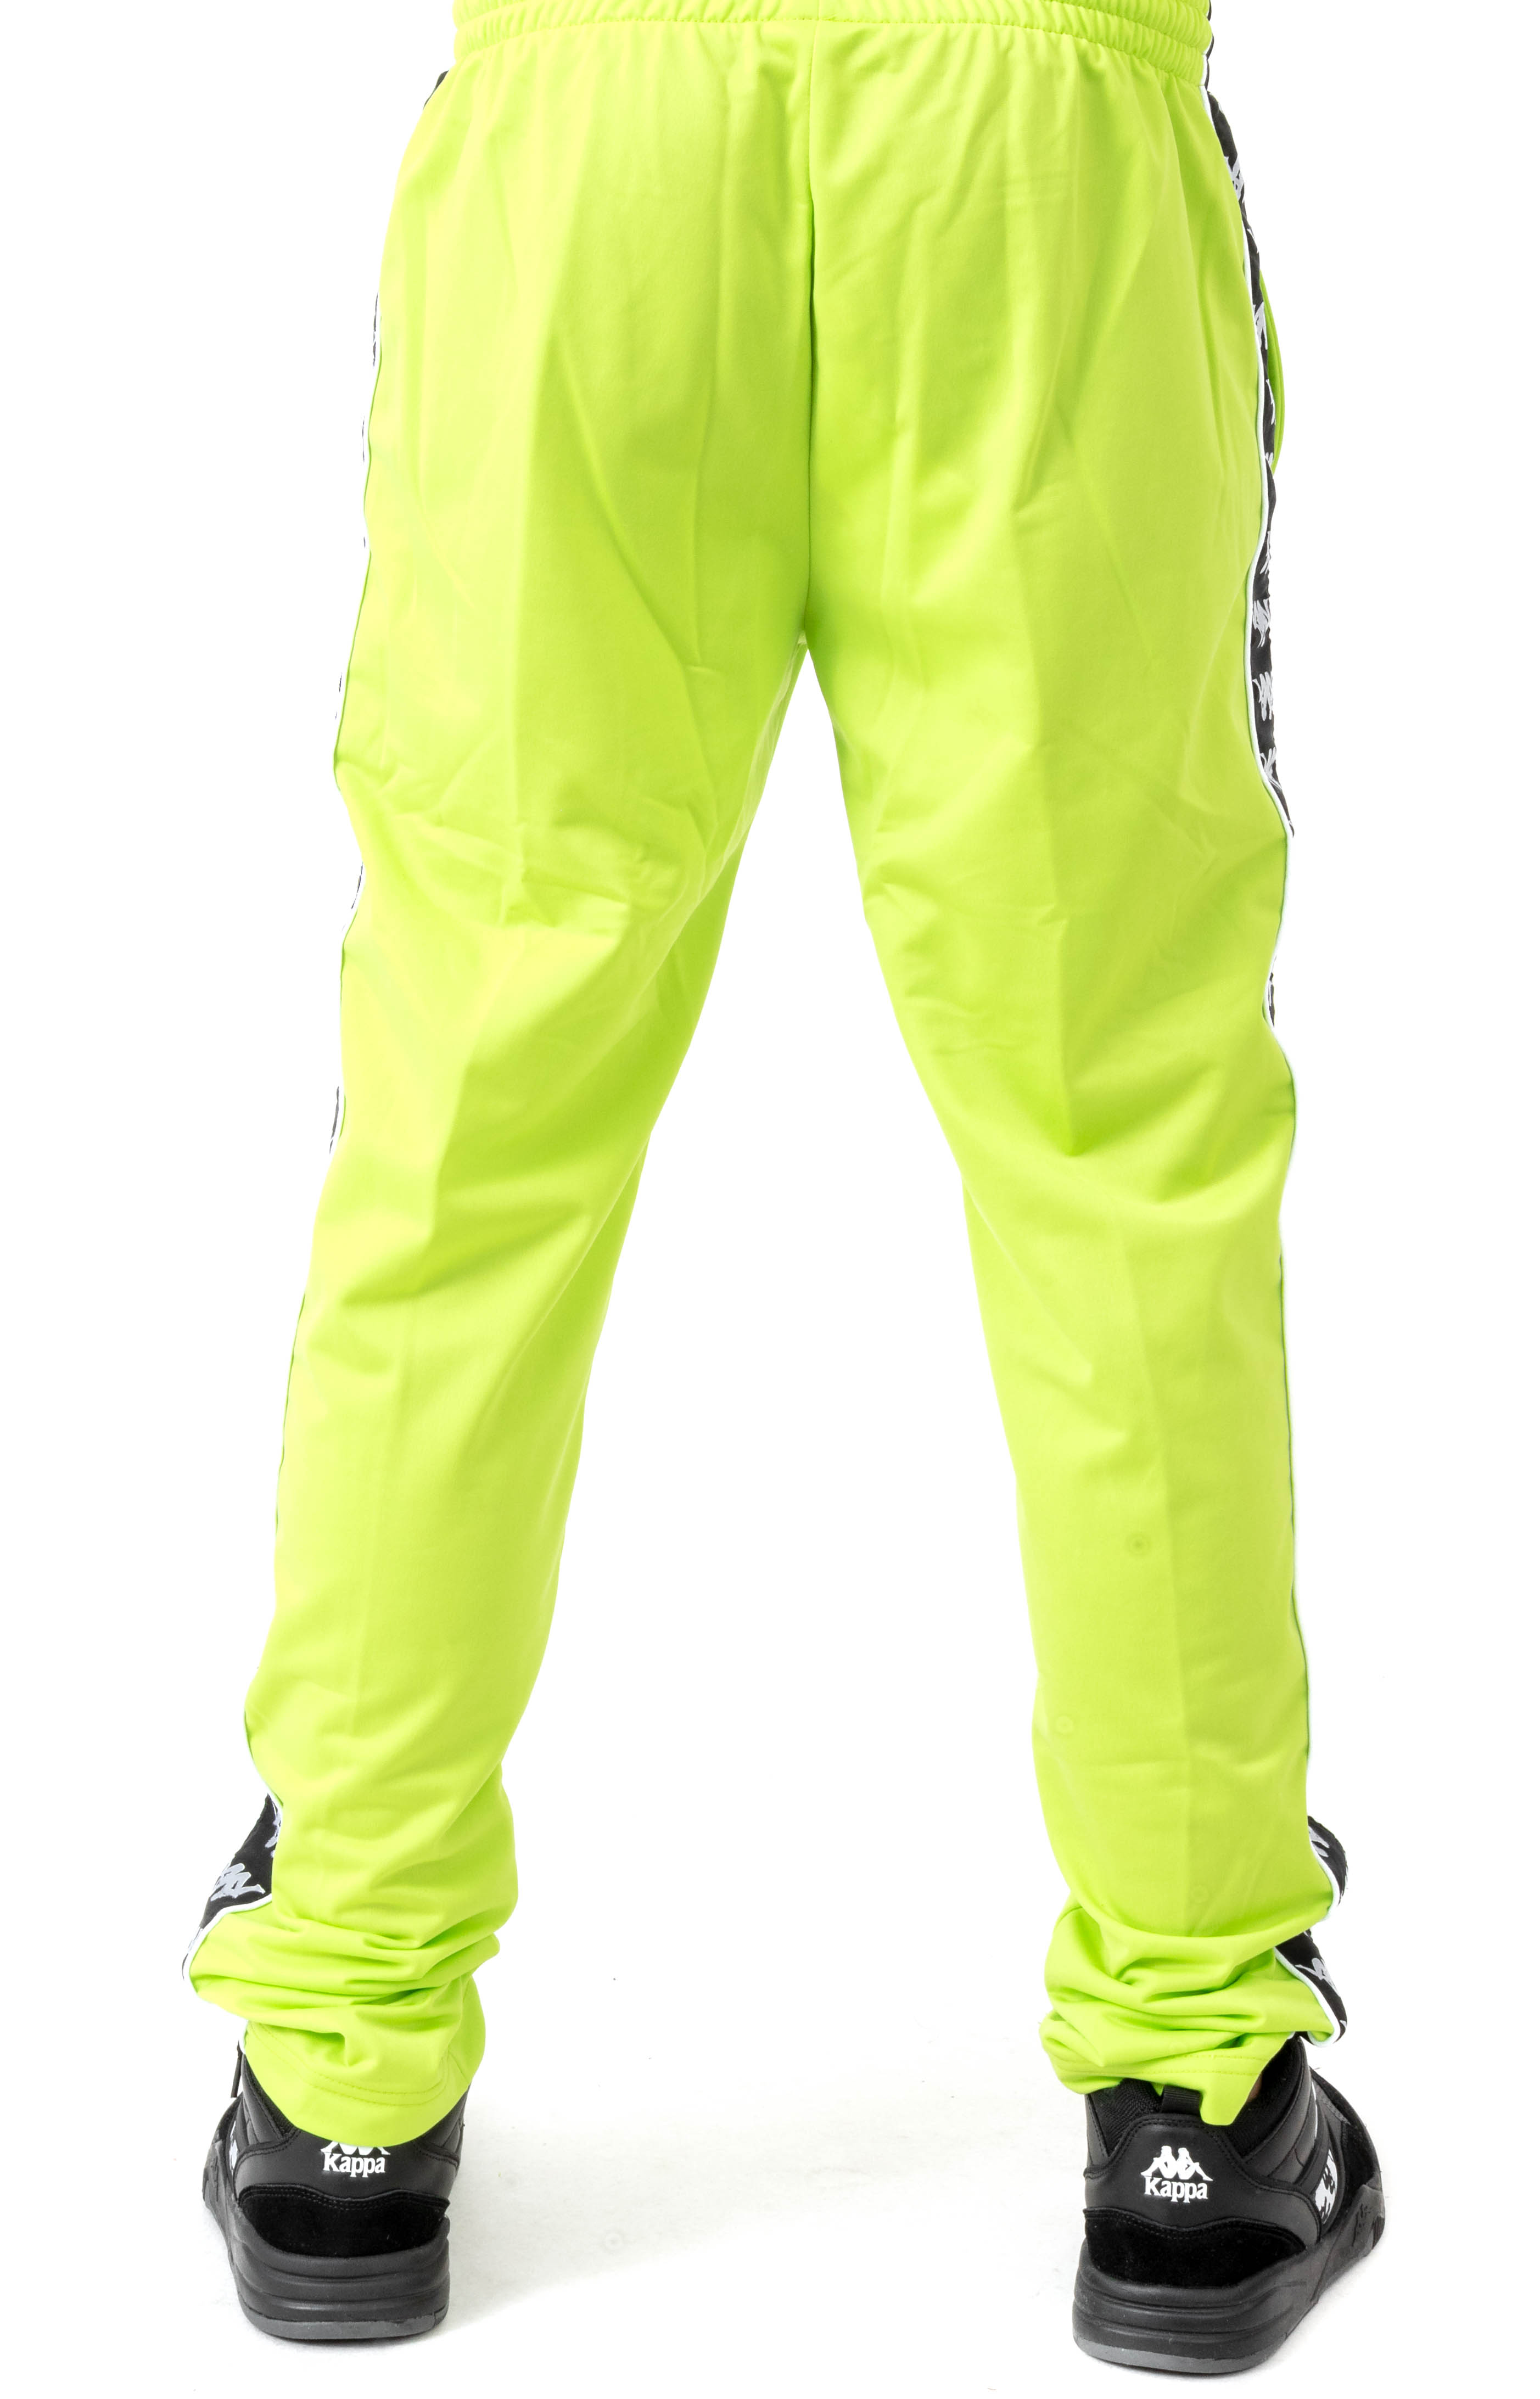 Authentic Bacile Track Pants - Green Lime 3